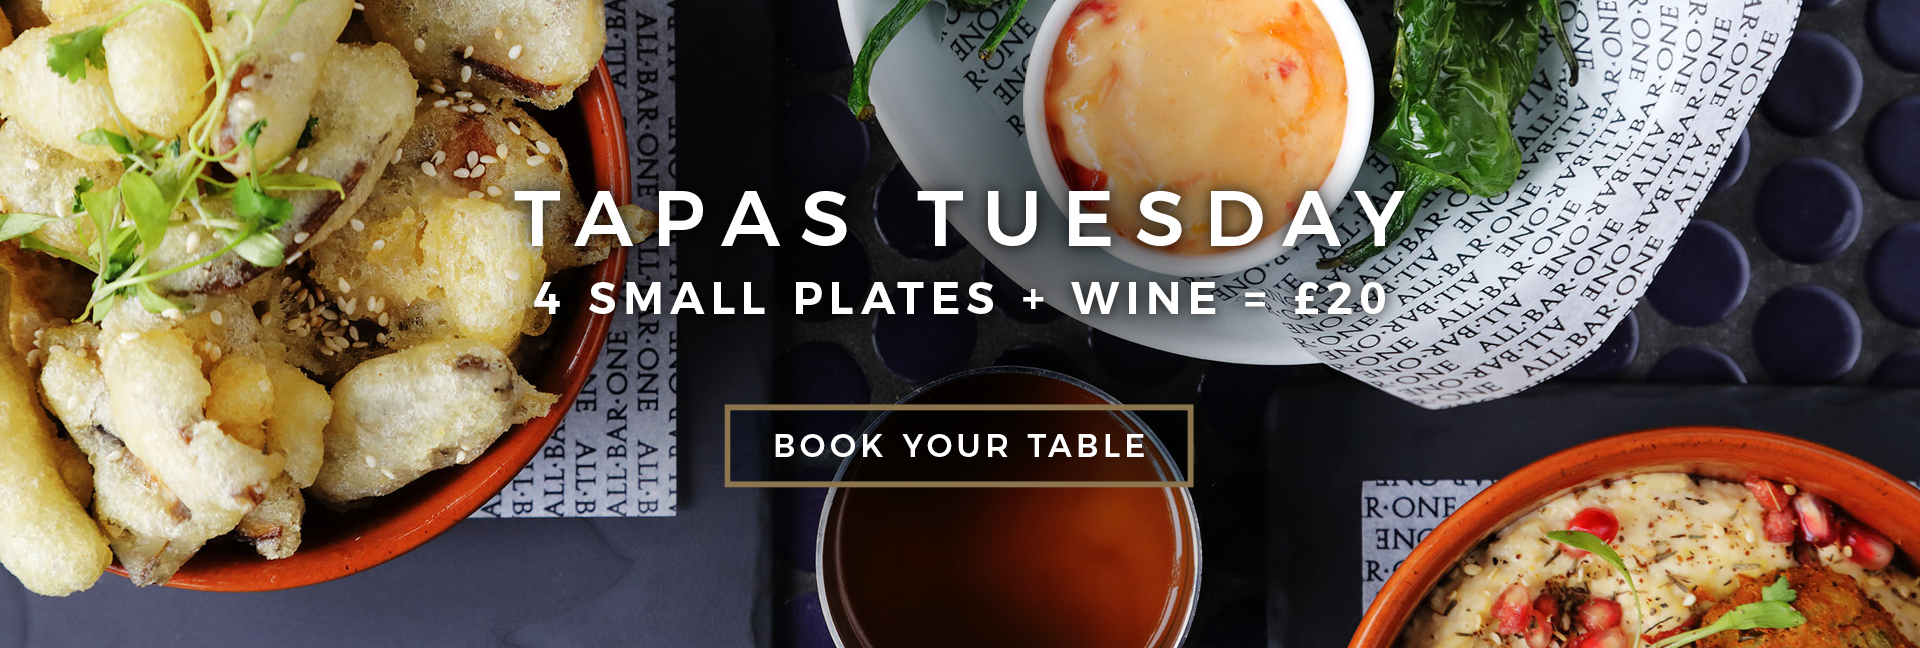 Tapas Tuesday at All Bar One Cannon Street - Book now